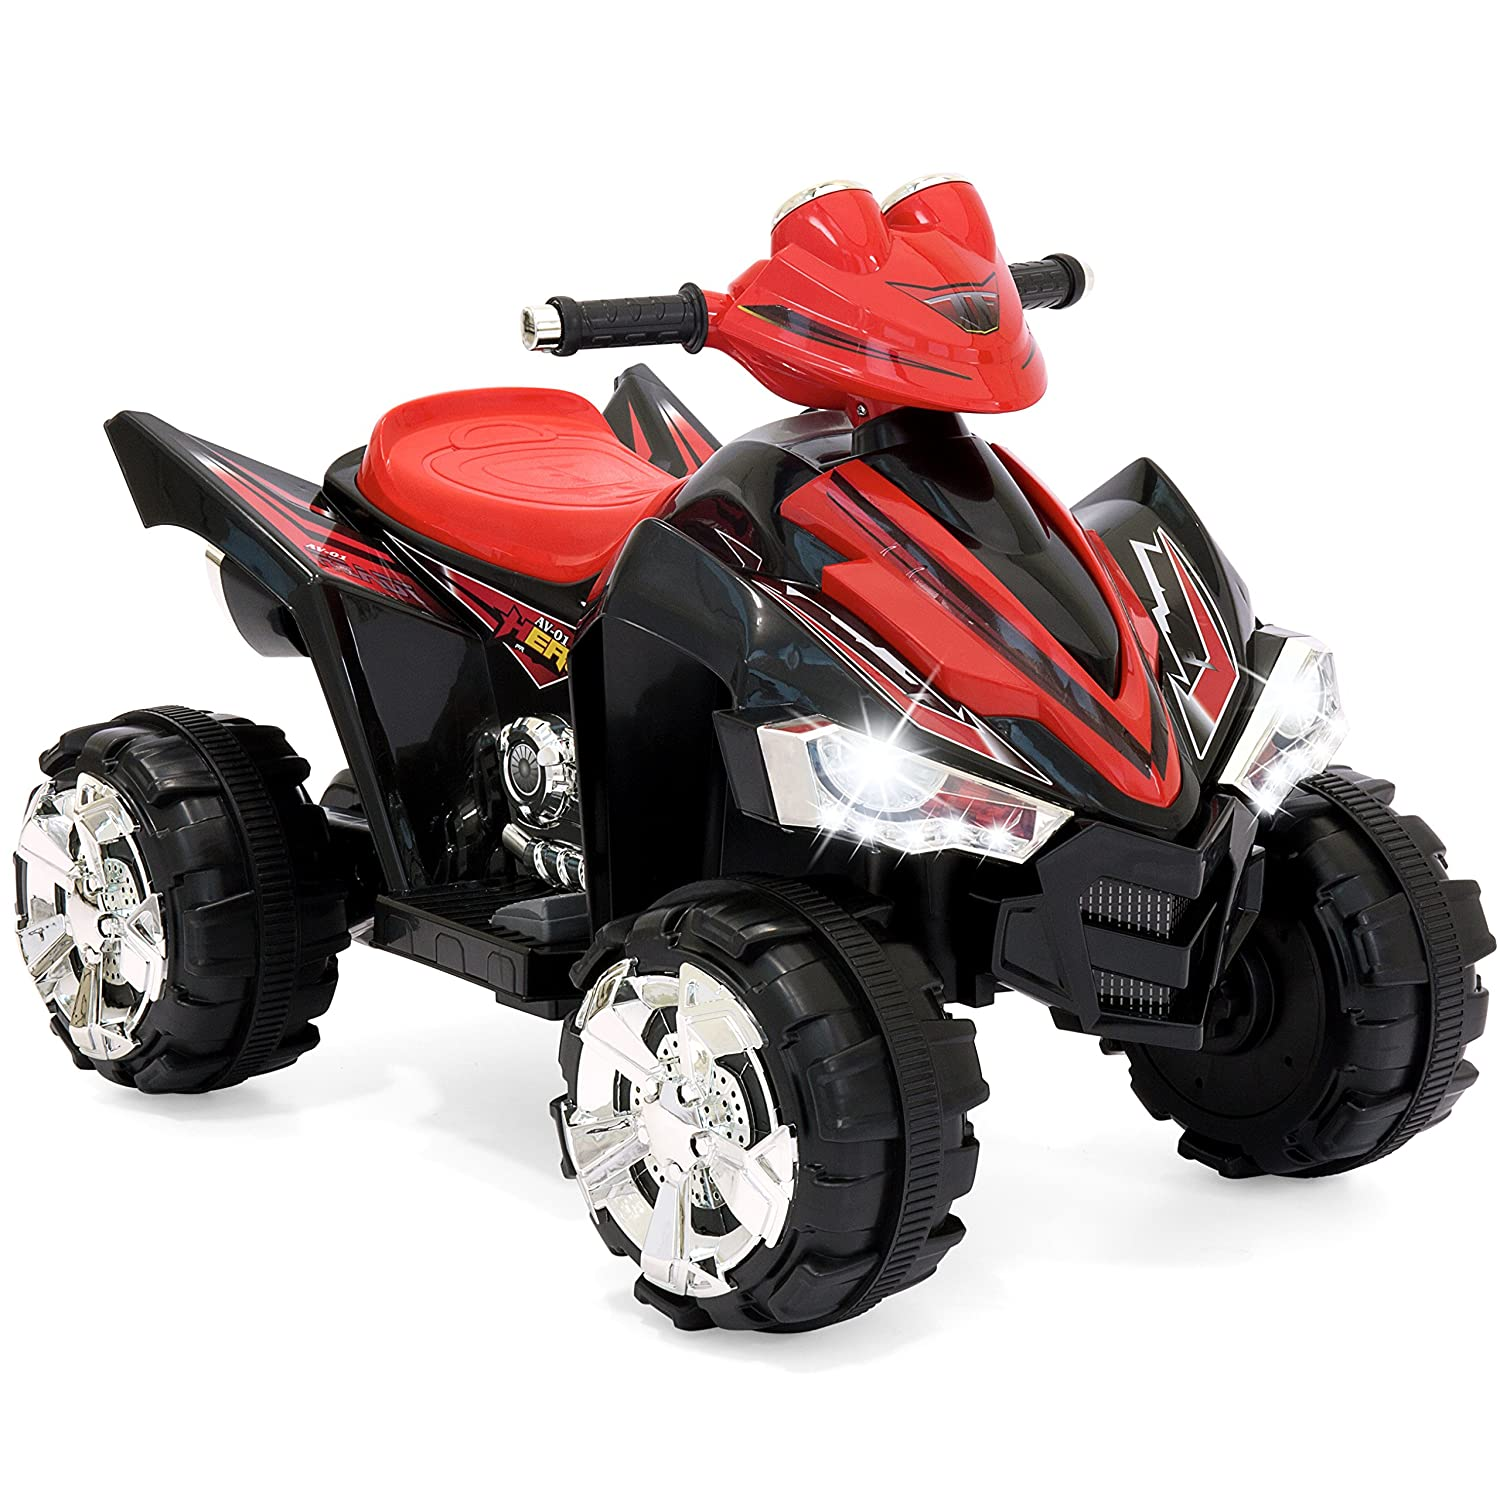 Best Choice Products Kids ATV Quad 4 Black Friday deal 2019